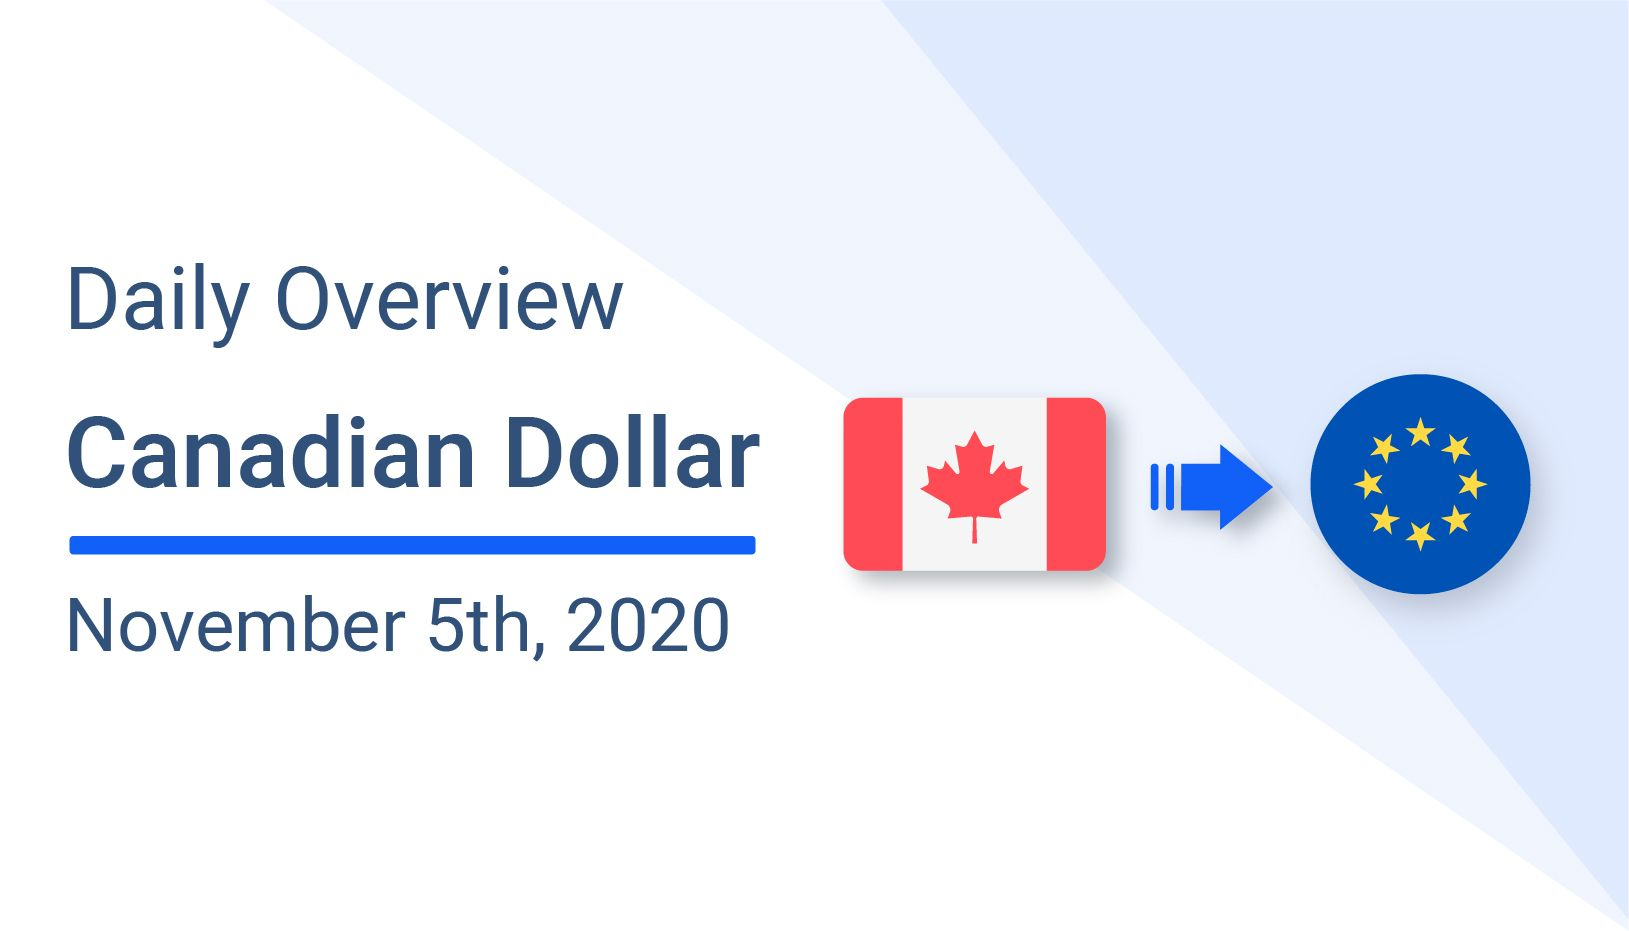 Canadian Dollar (CAD) to European EURO (EUR) Daily Overview: November 5th